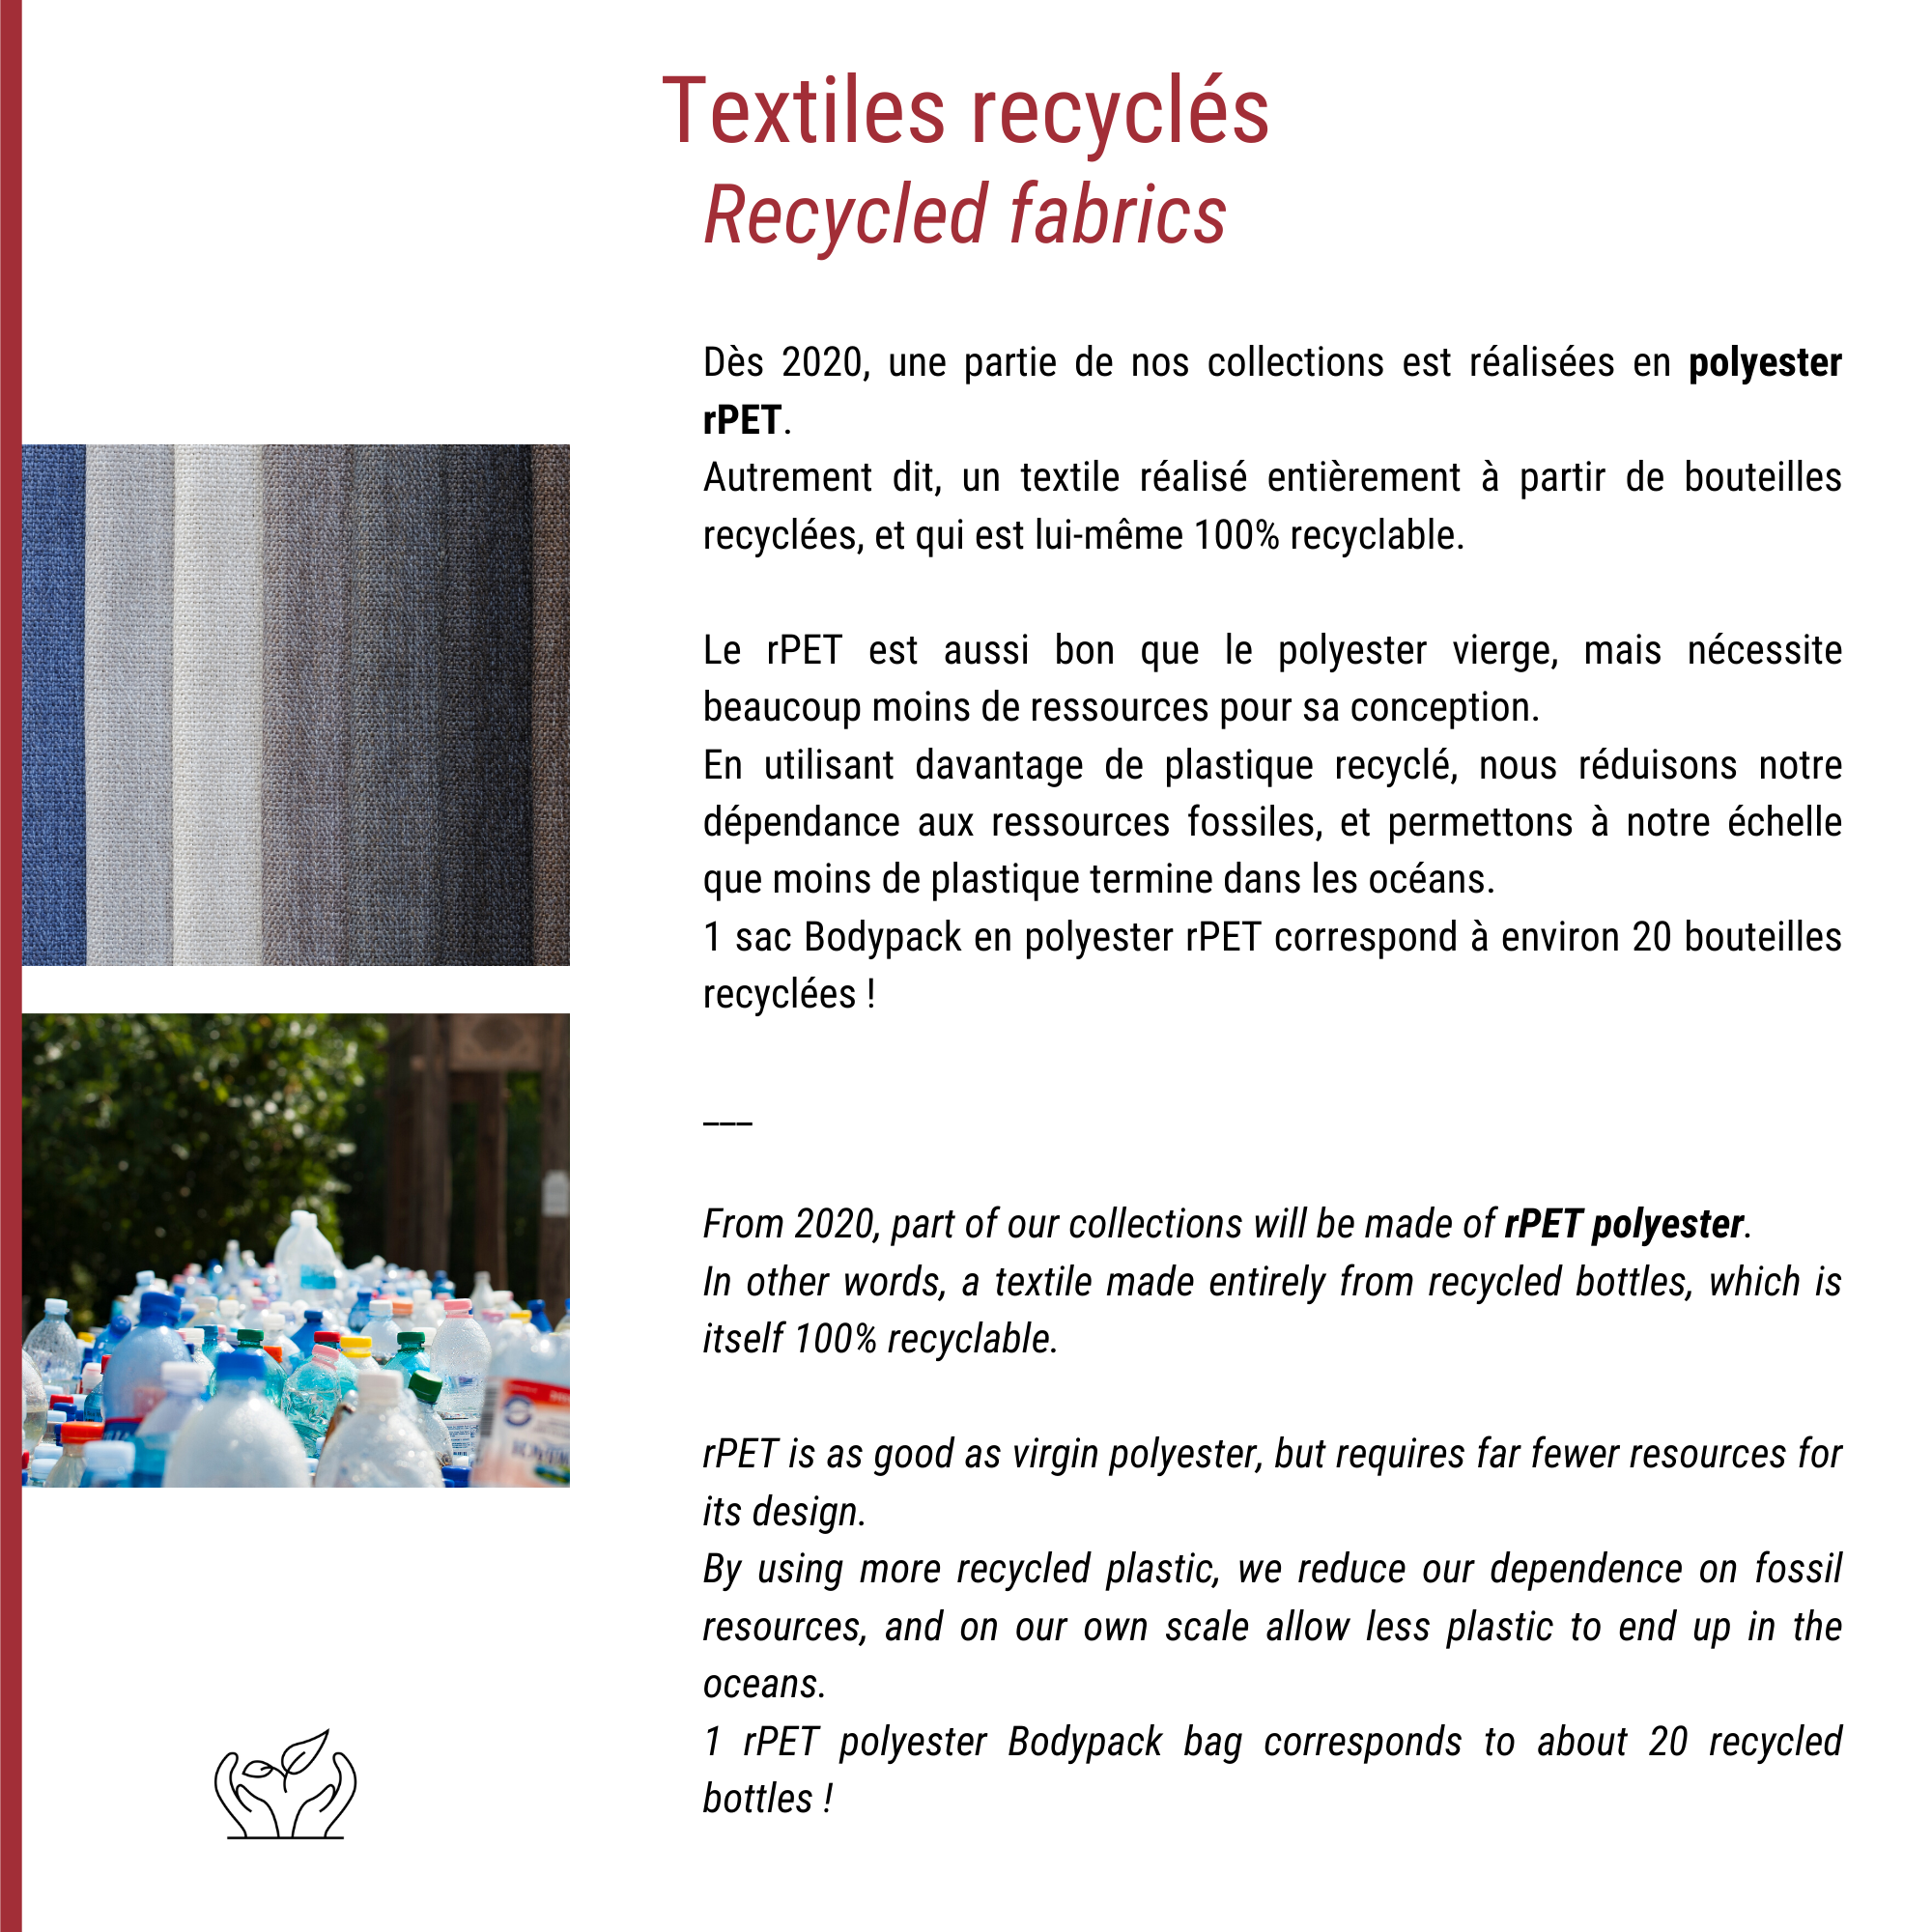 Use of Recycled Textile